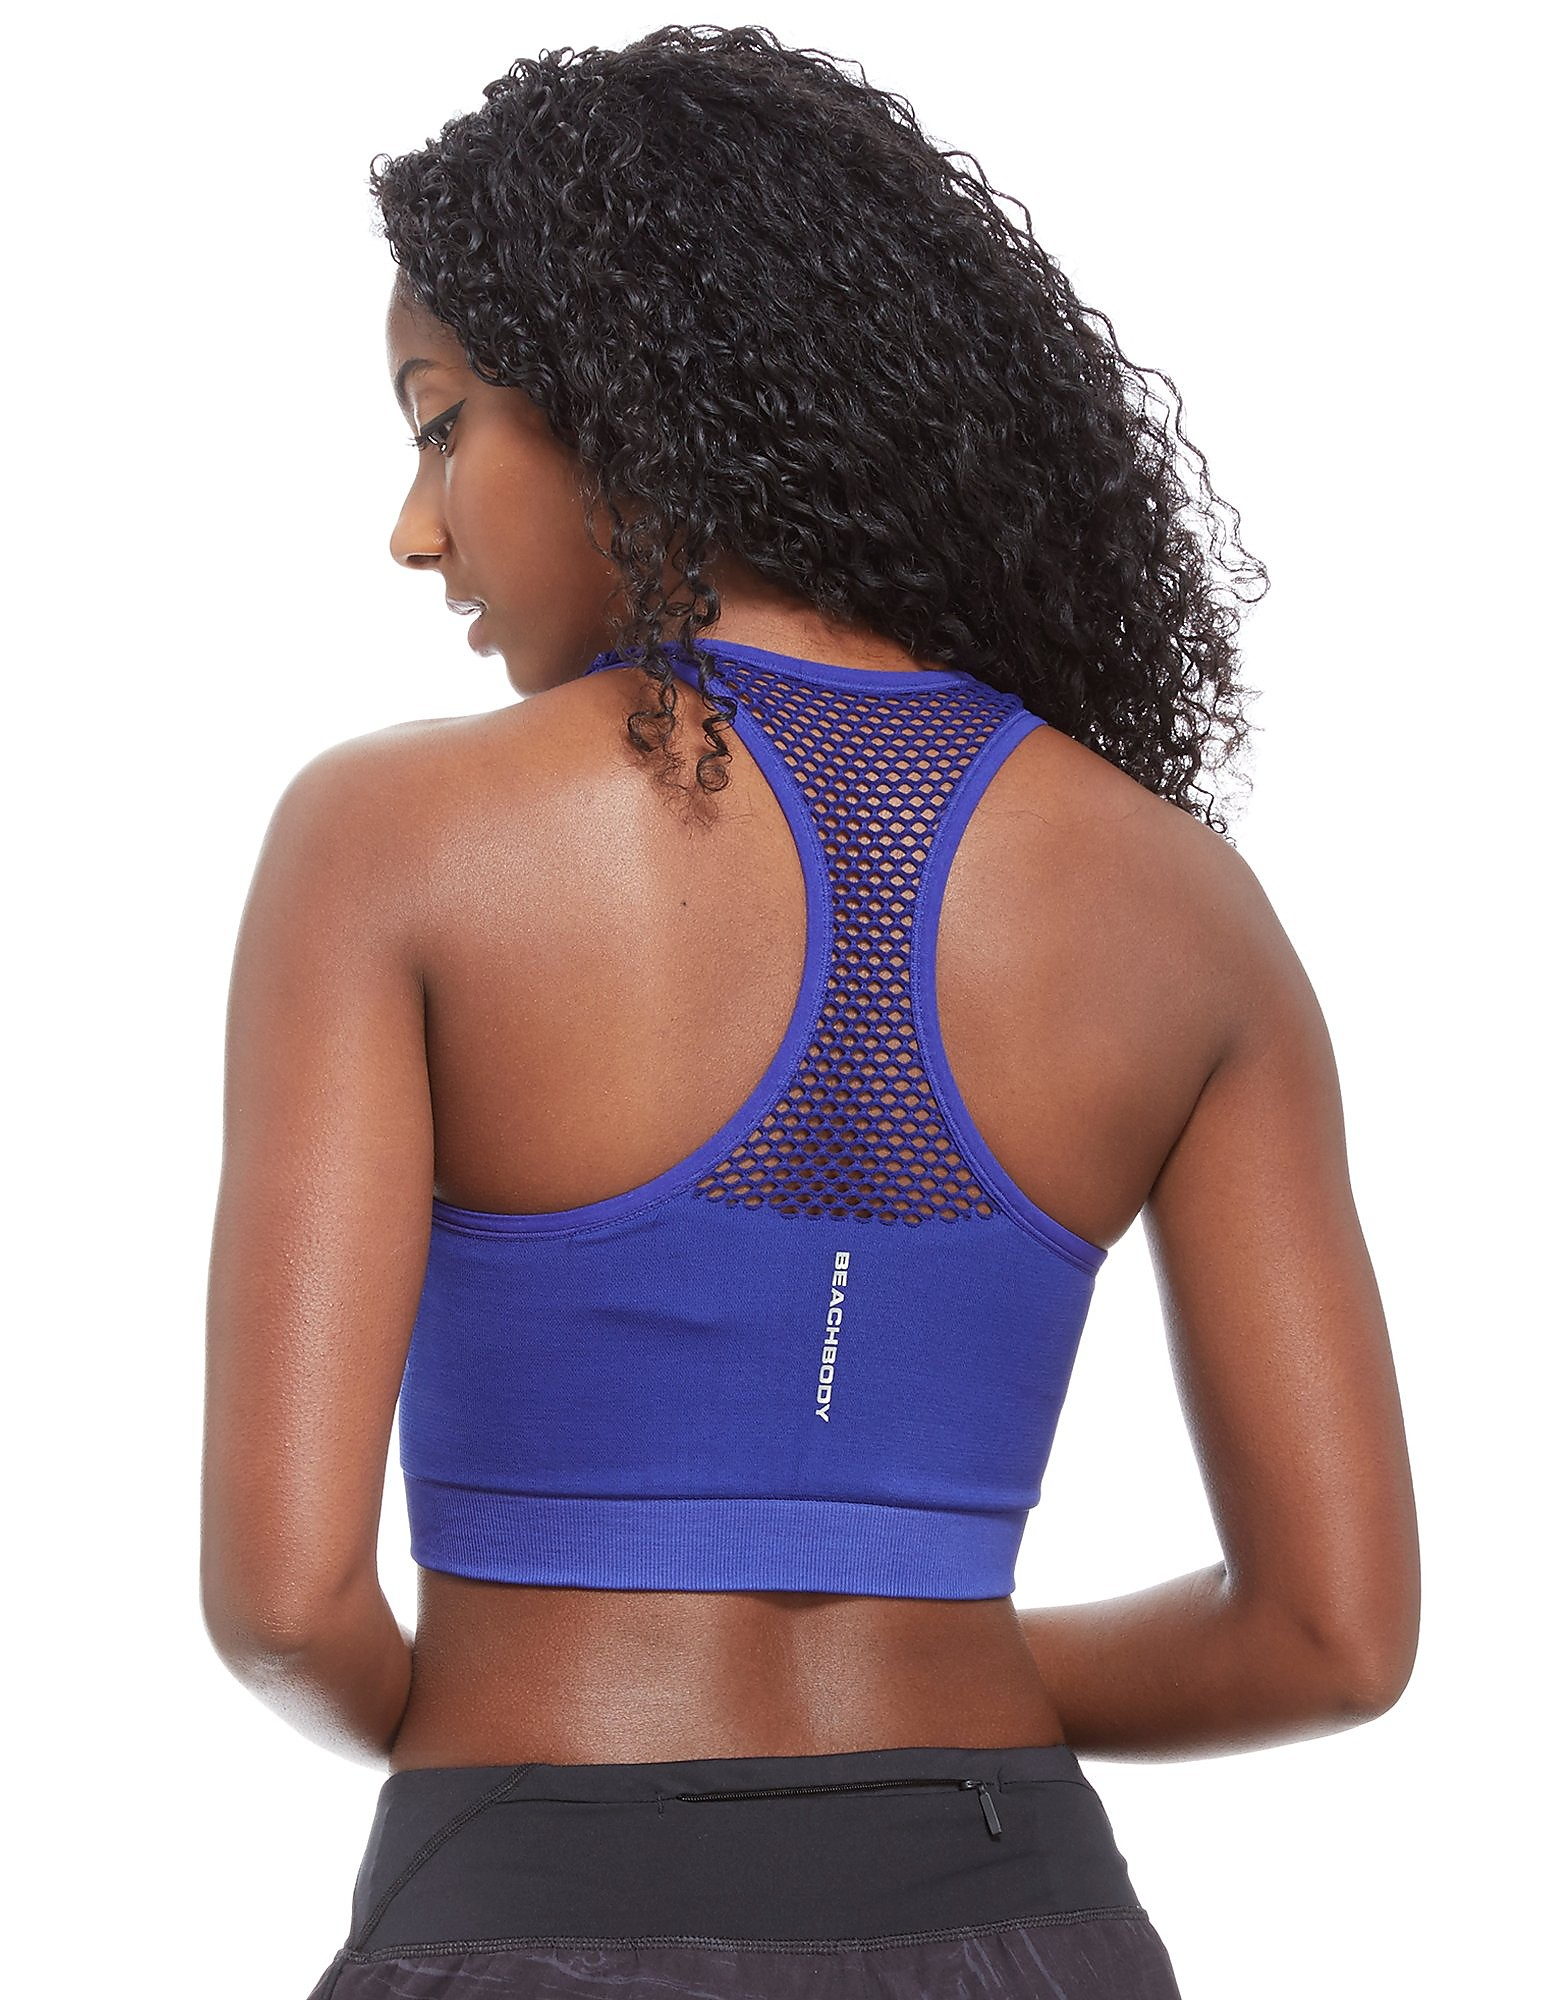 Beachbody Reveal Mesh Bra